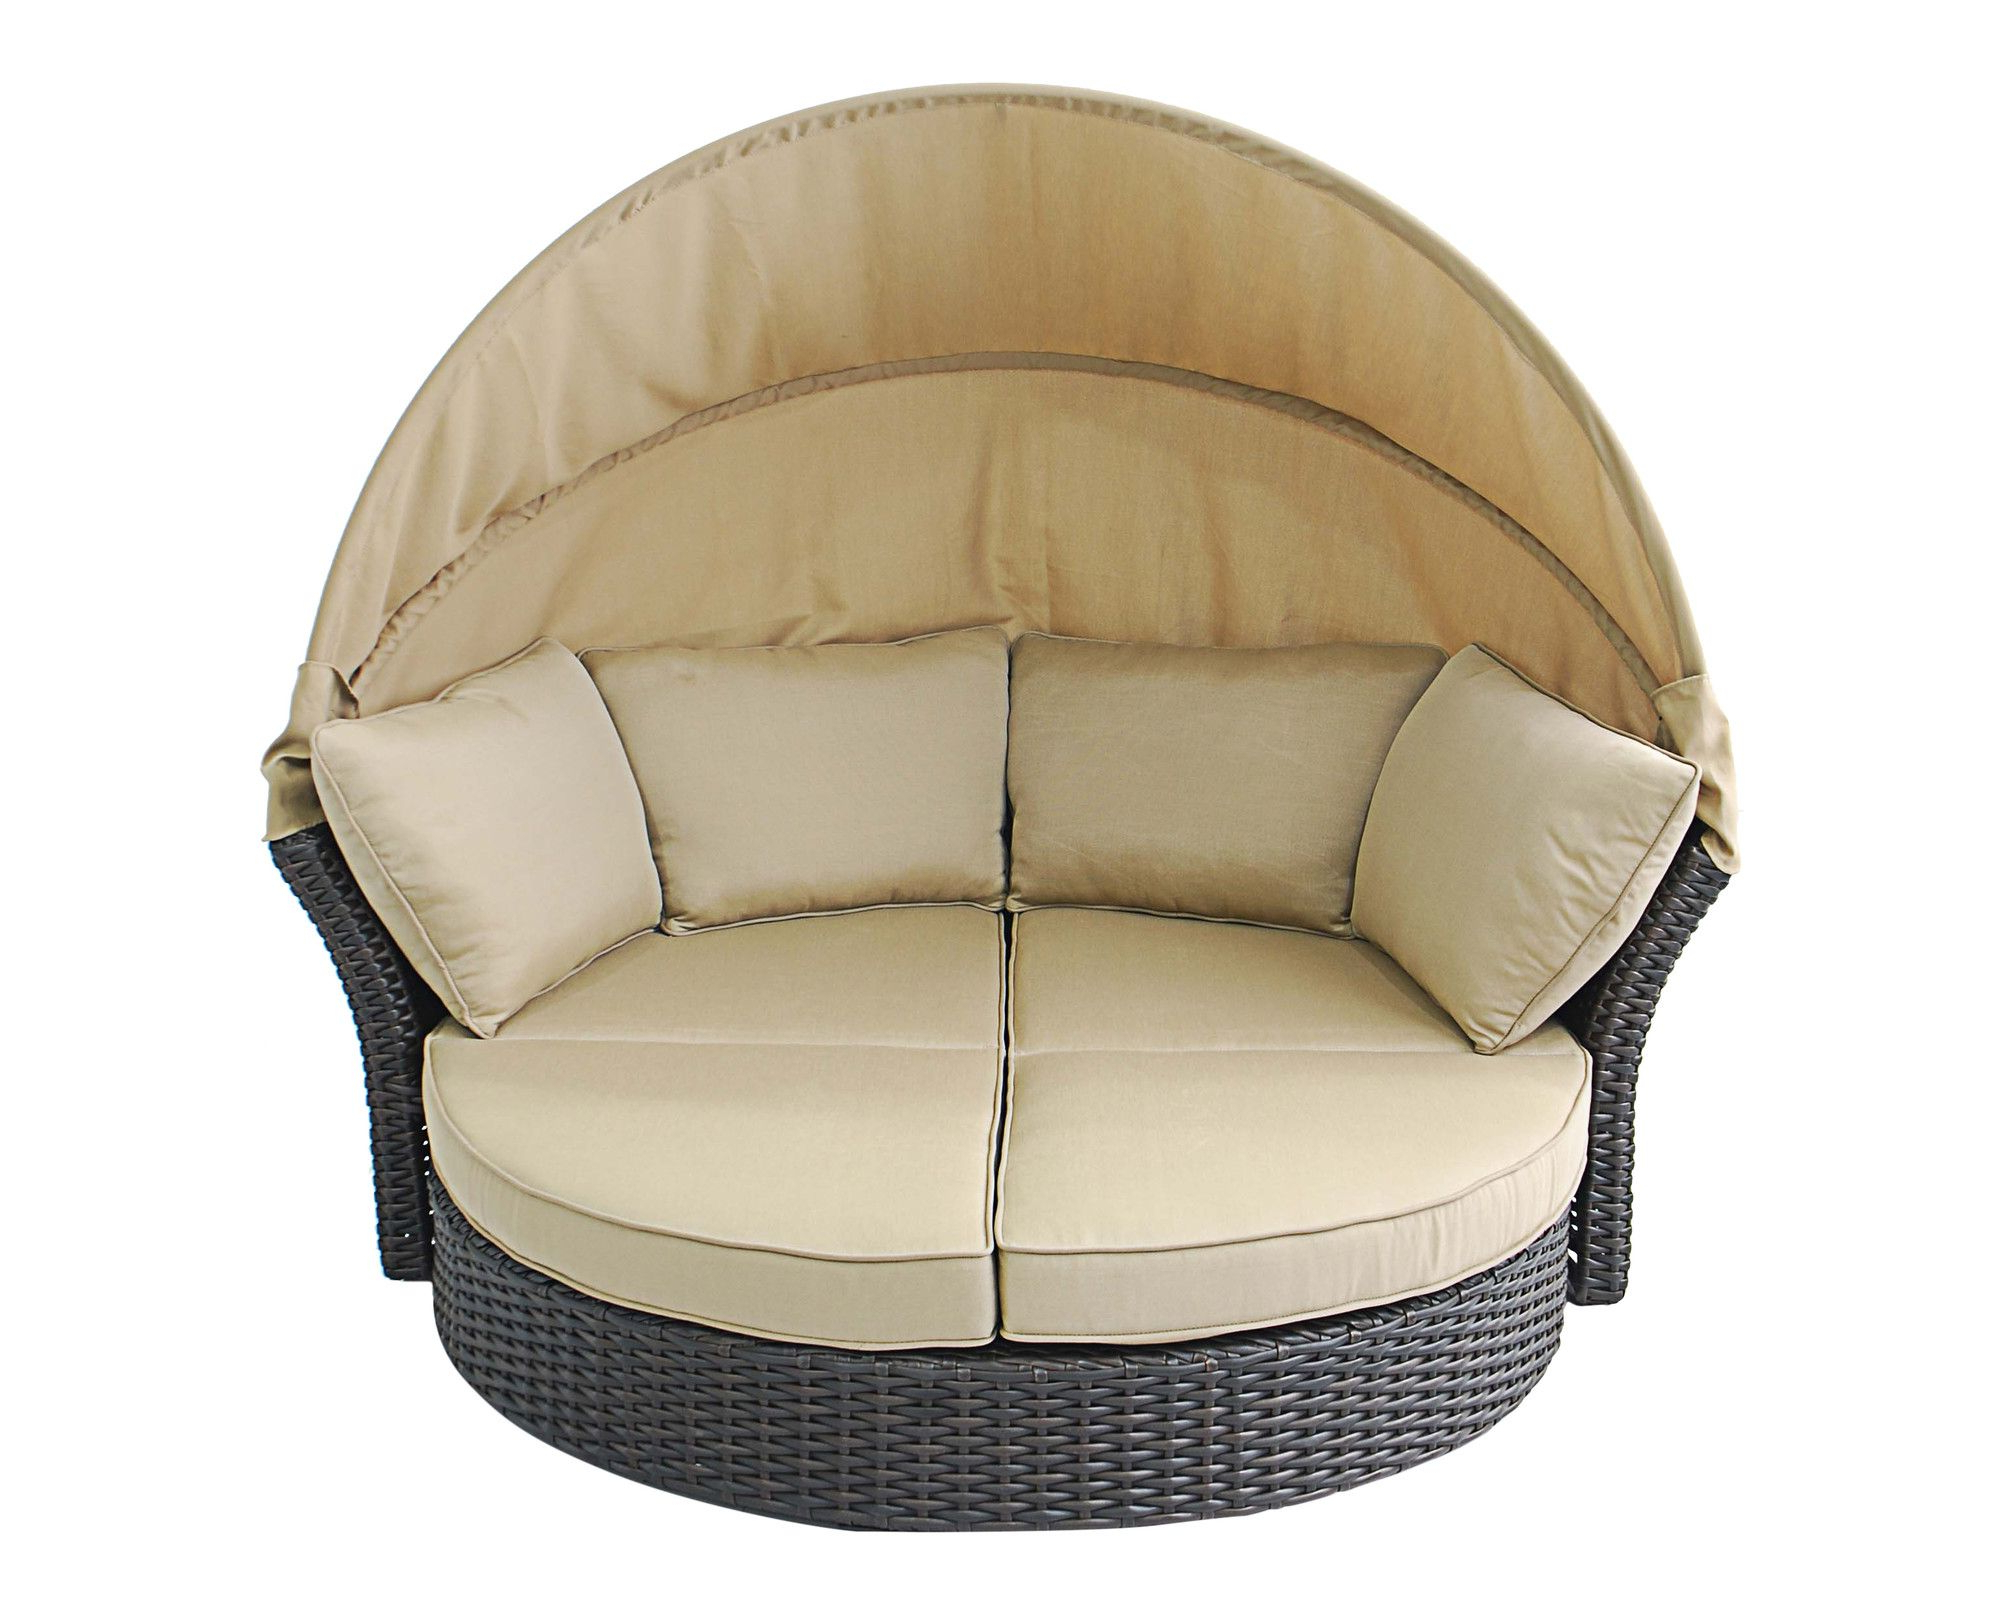 Creative Living Antigua Loveseat With Cushions & Reviews Inside Most Recent Gilbreath Daybeds With Cushions (View 8 of 20)